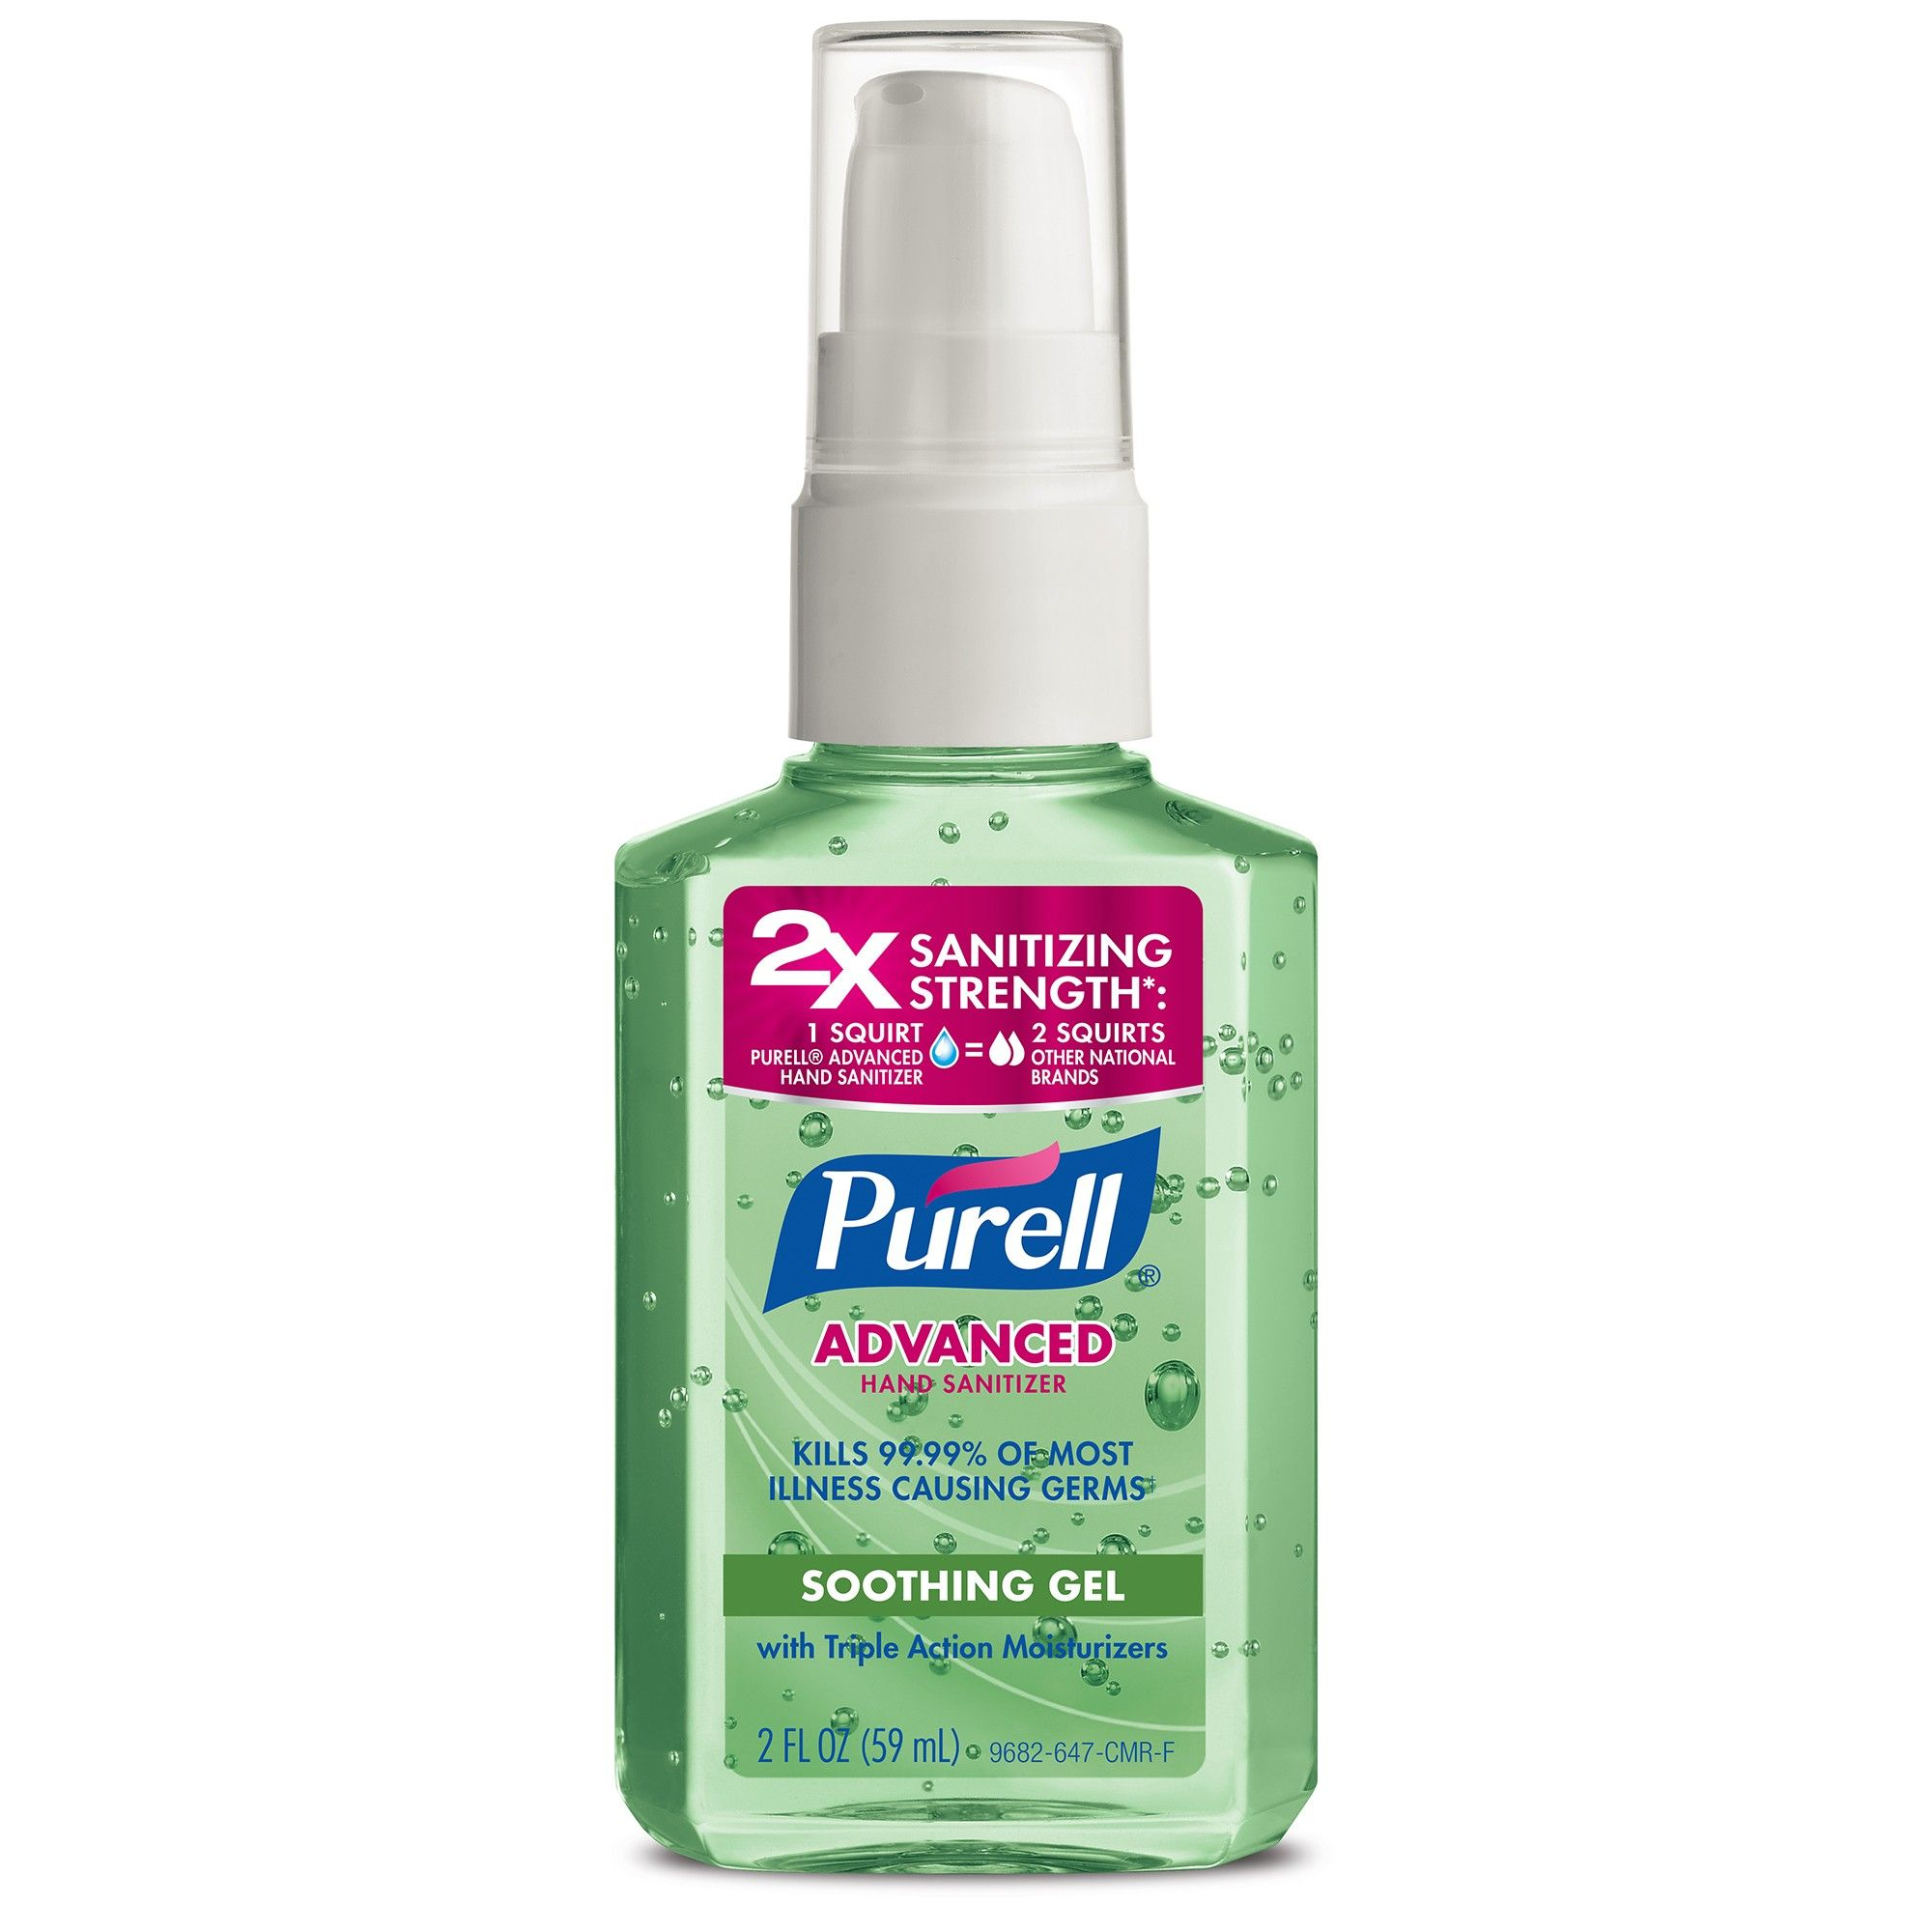 Purell Advanced Hand Sanitiser Jelly Wrap 30ml Sanitizer Hand